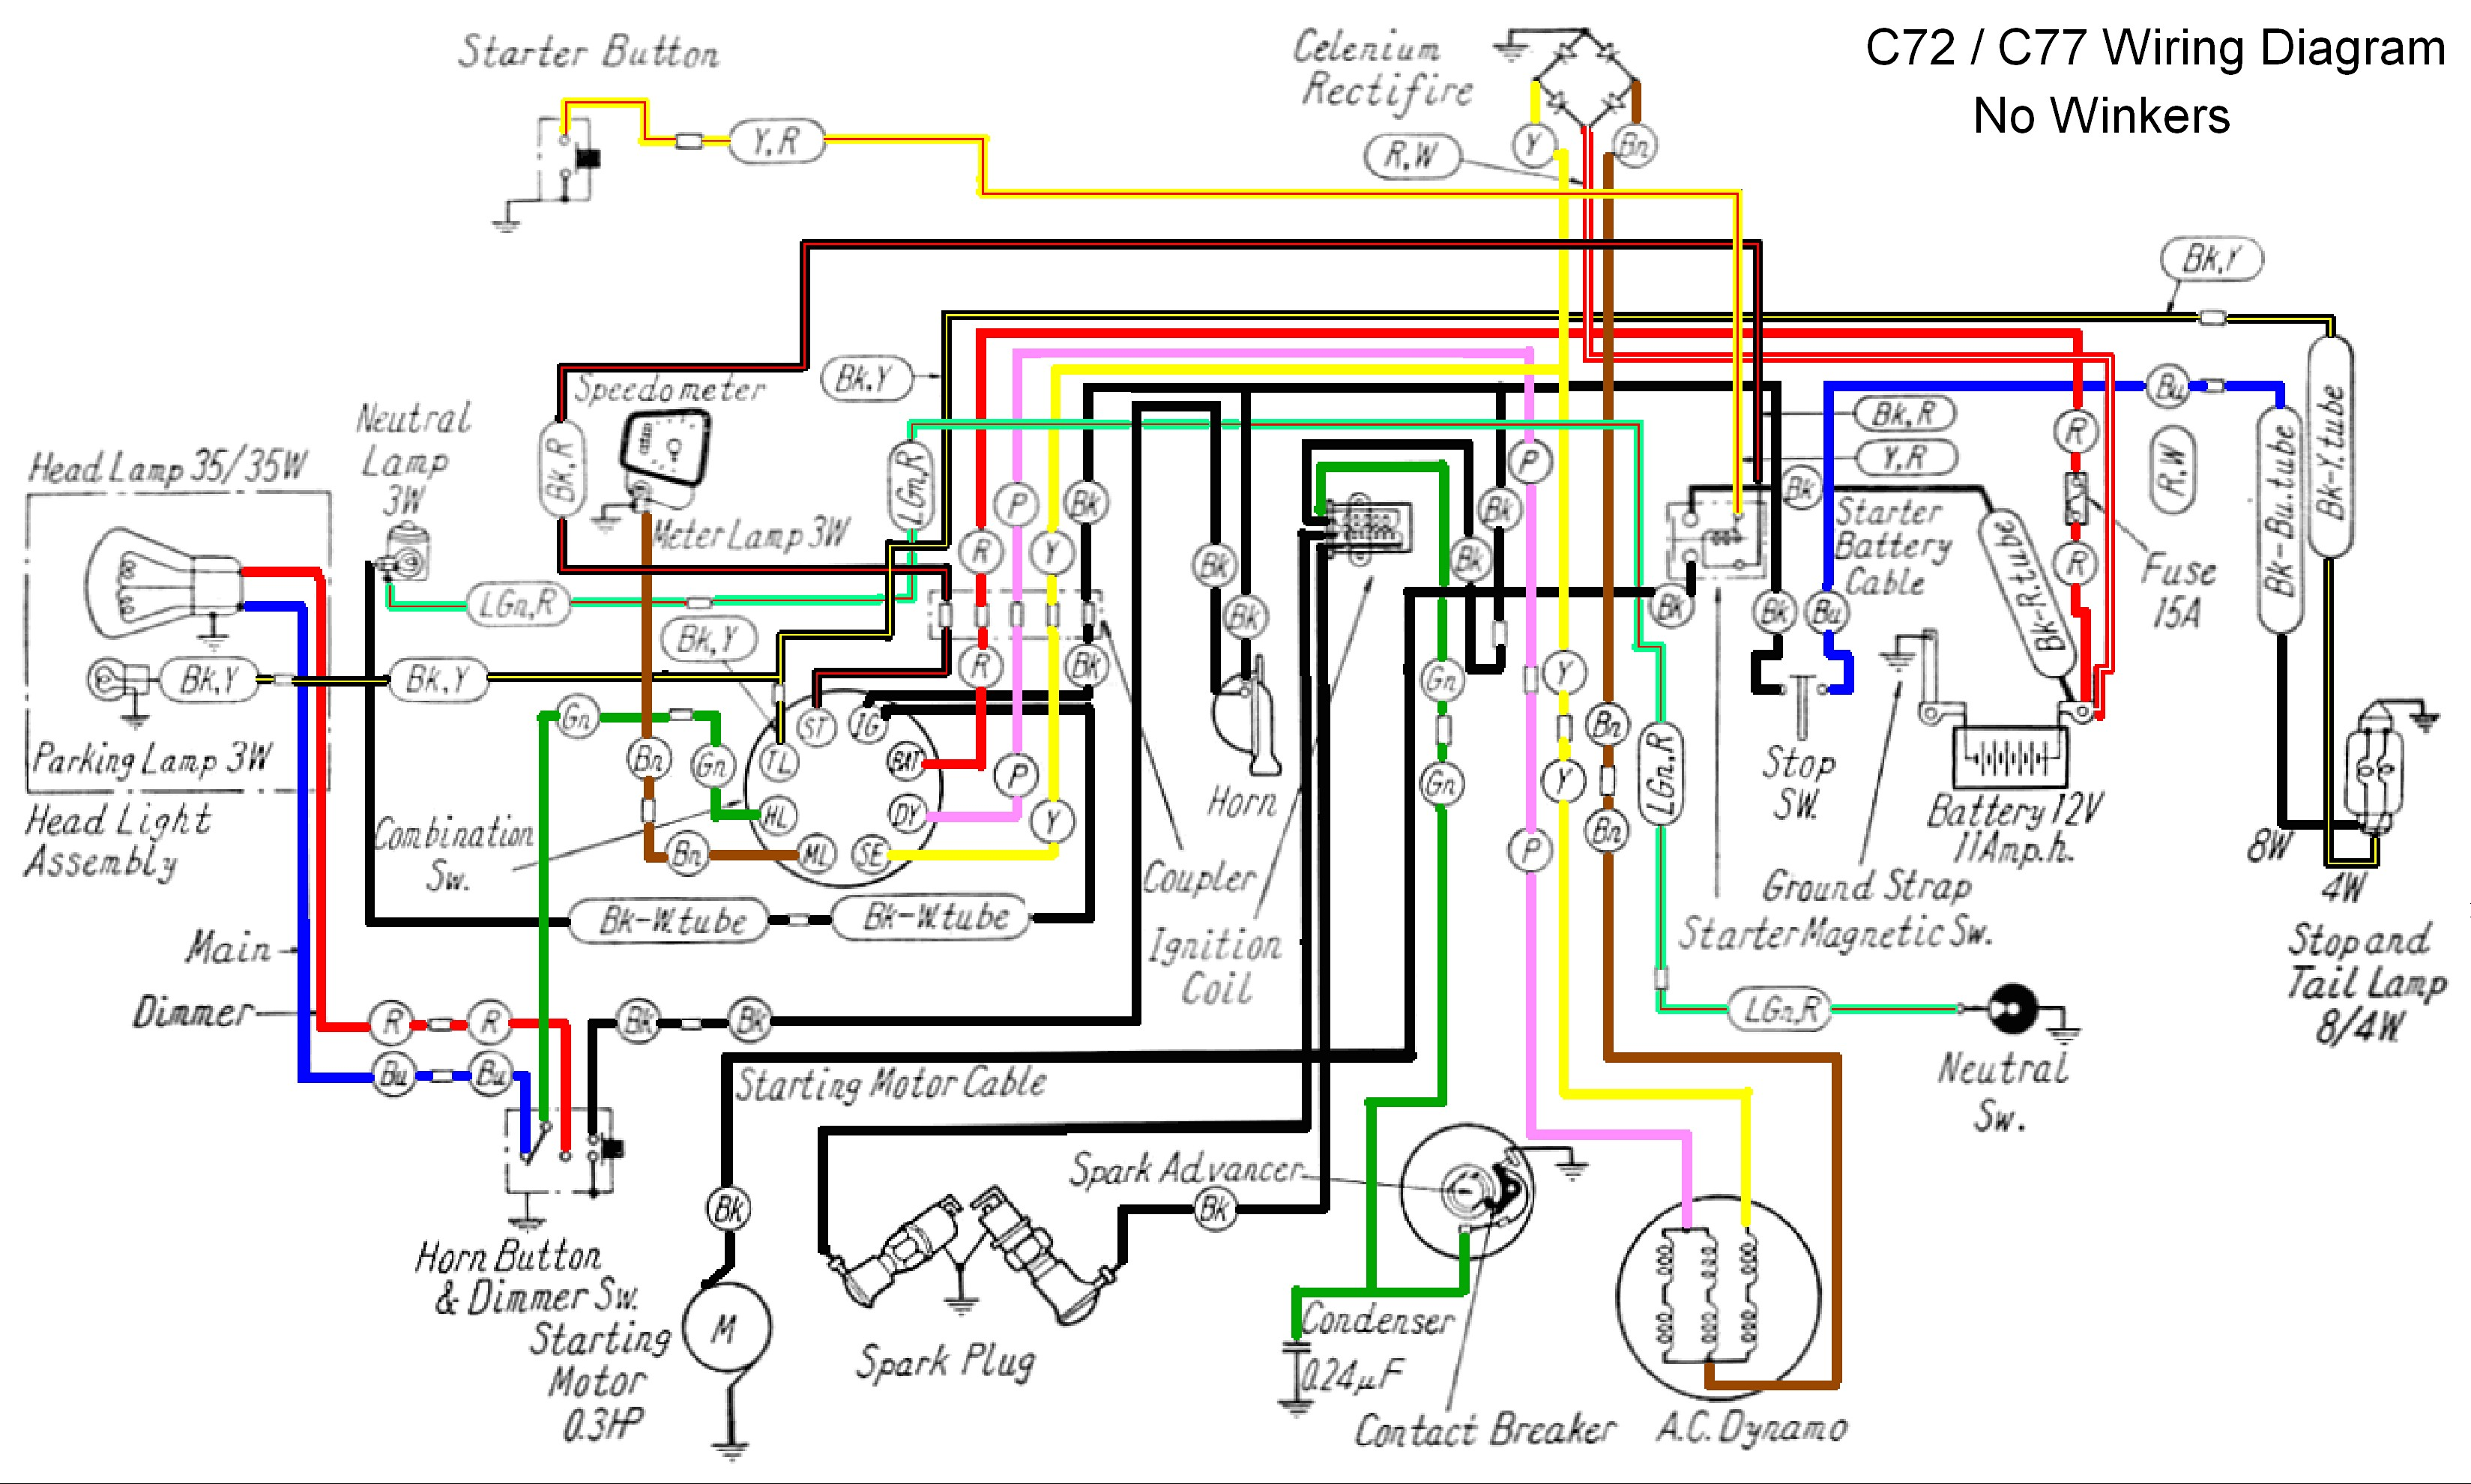 Simple Wiring For Honda Bobber - Wiring Diagram Completed on chopper wiring diagram, lance cdi ignition wiring diagram, starter relay wiring diagram, simple wiring schematics, simple chopper wiring, universal ignition switch wiring diagram, simple wiring circuits, basic ignition wiring diagram, motorcycle wiring diagram, simple electrical wiring diagrams,